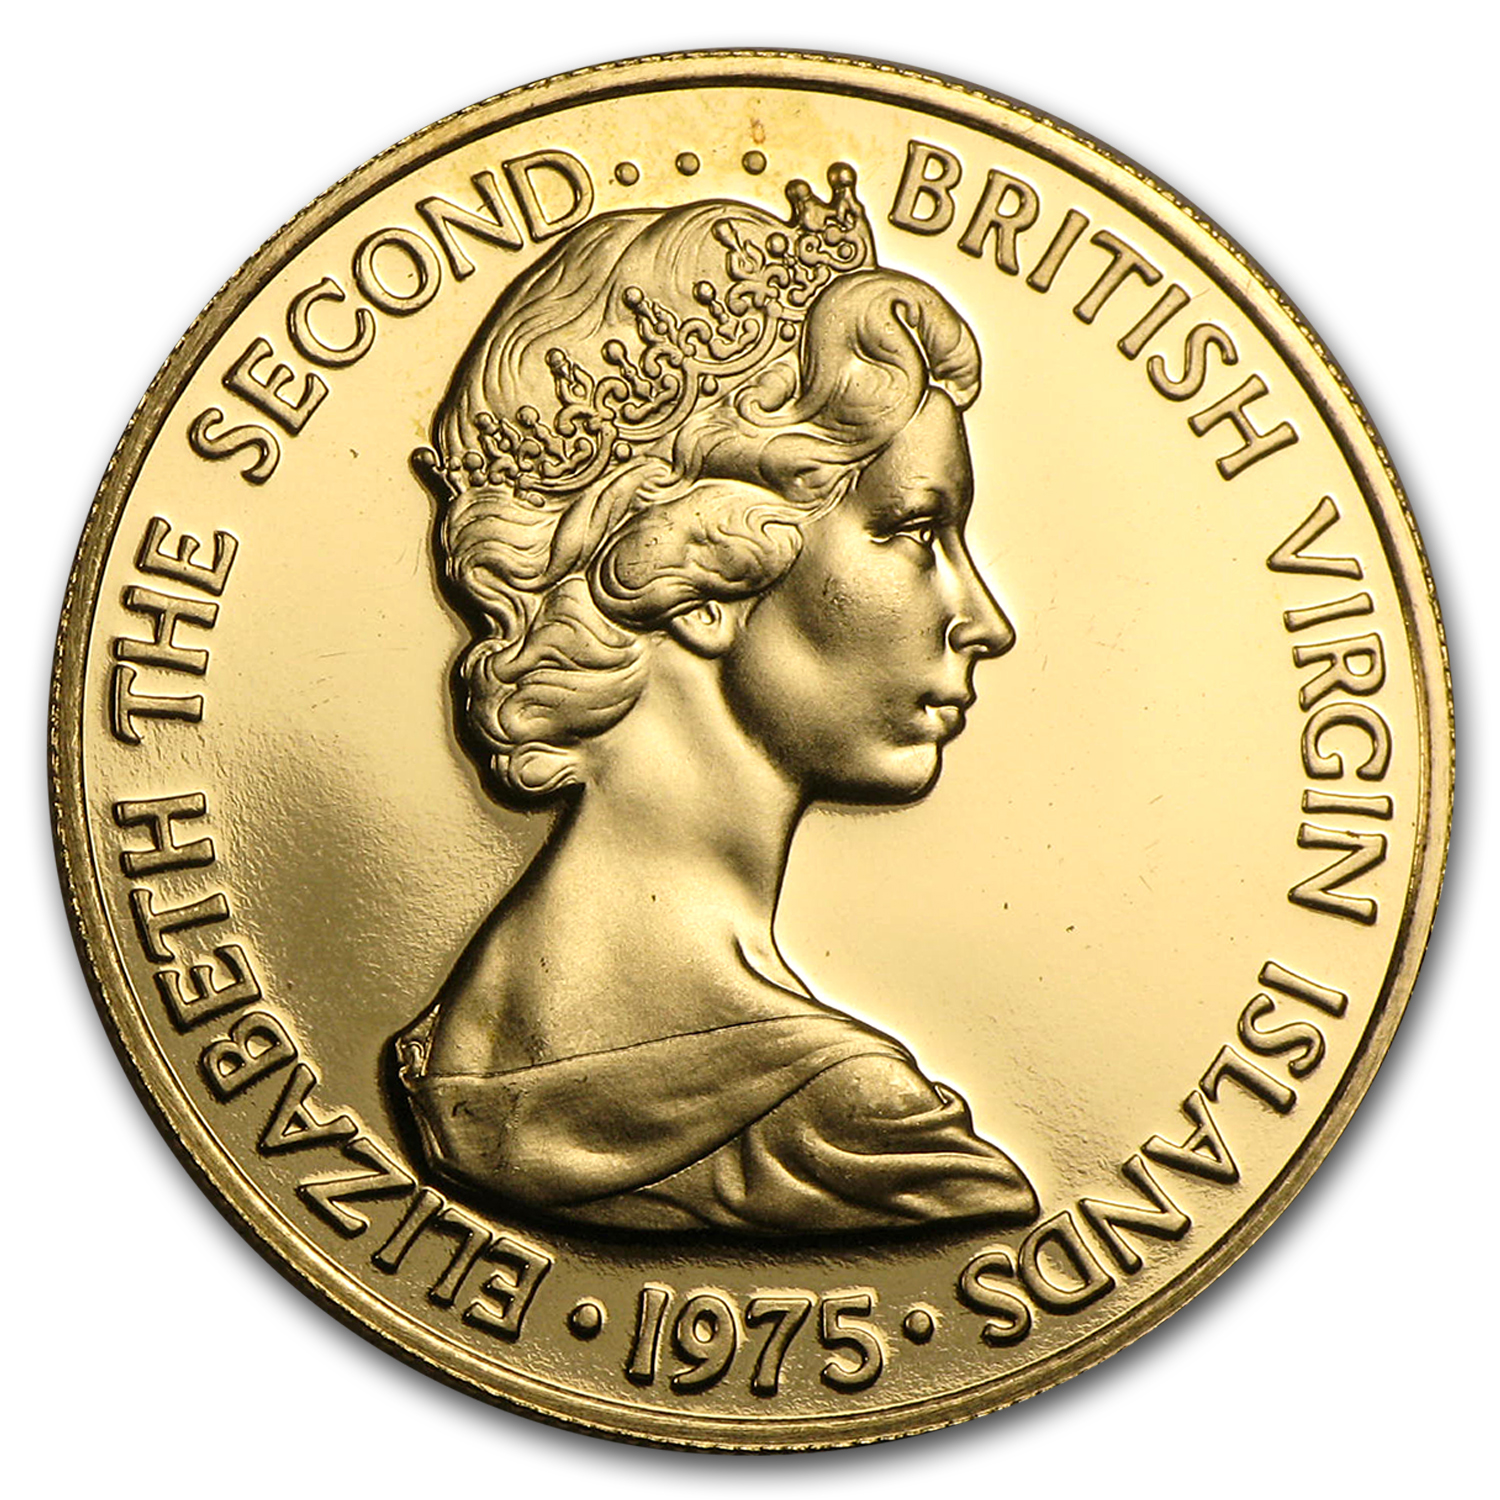 1975 British Virgin Islands Proof Gold 100 Dollars